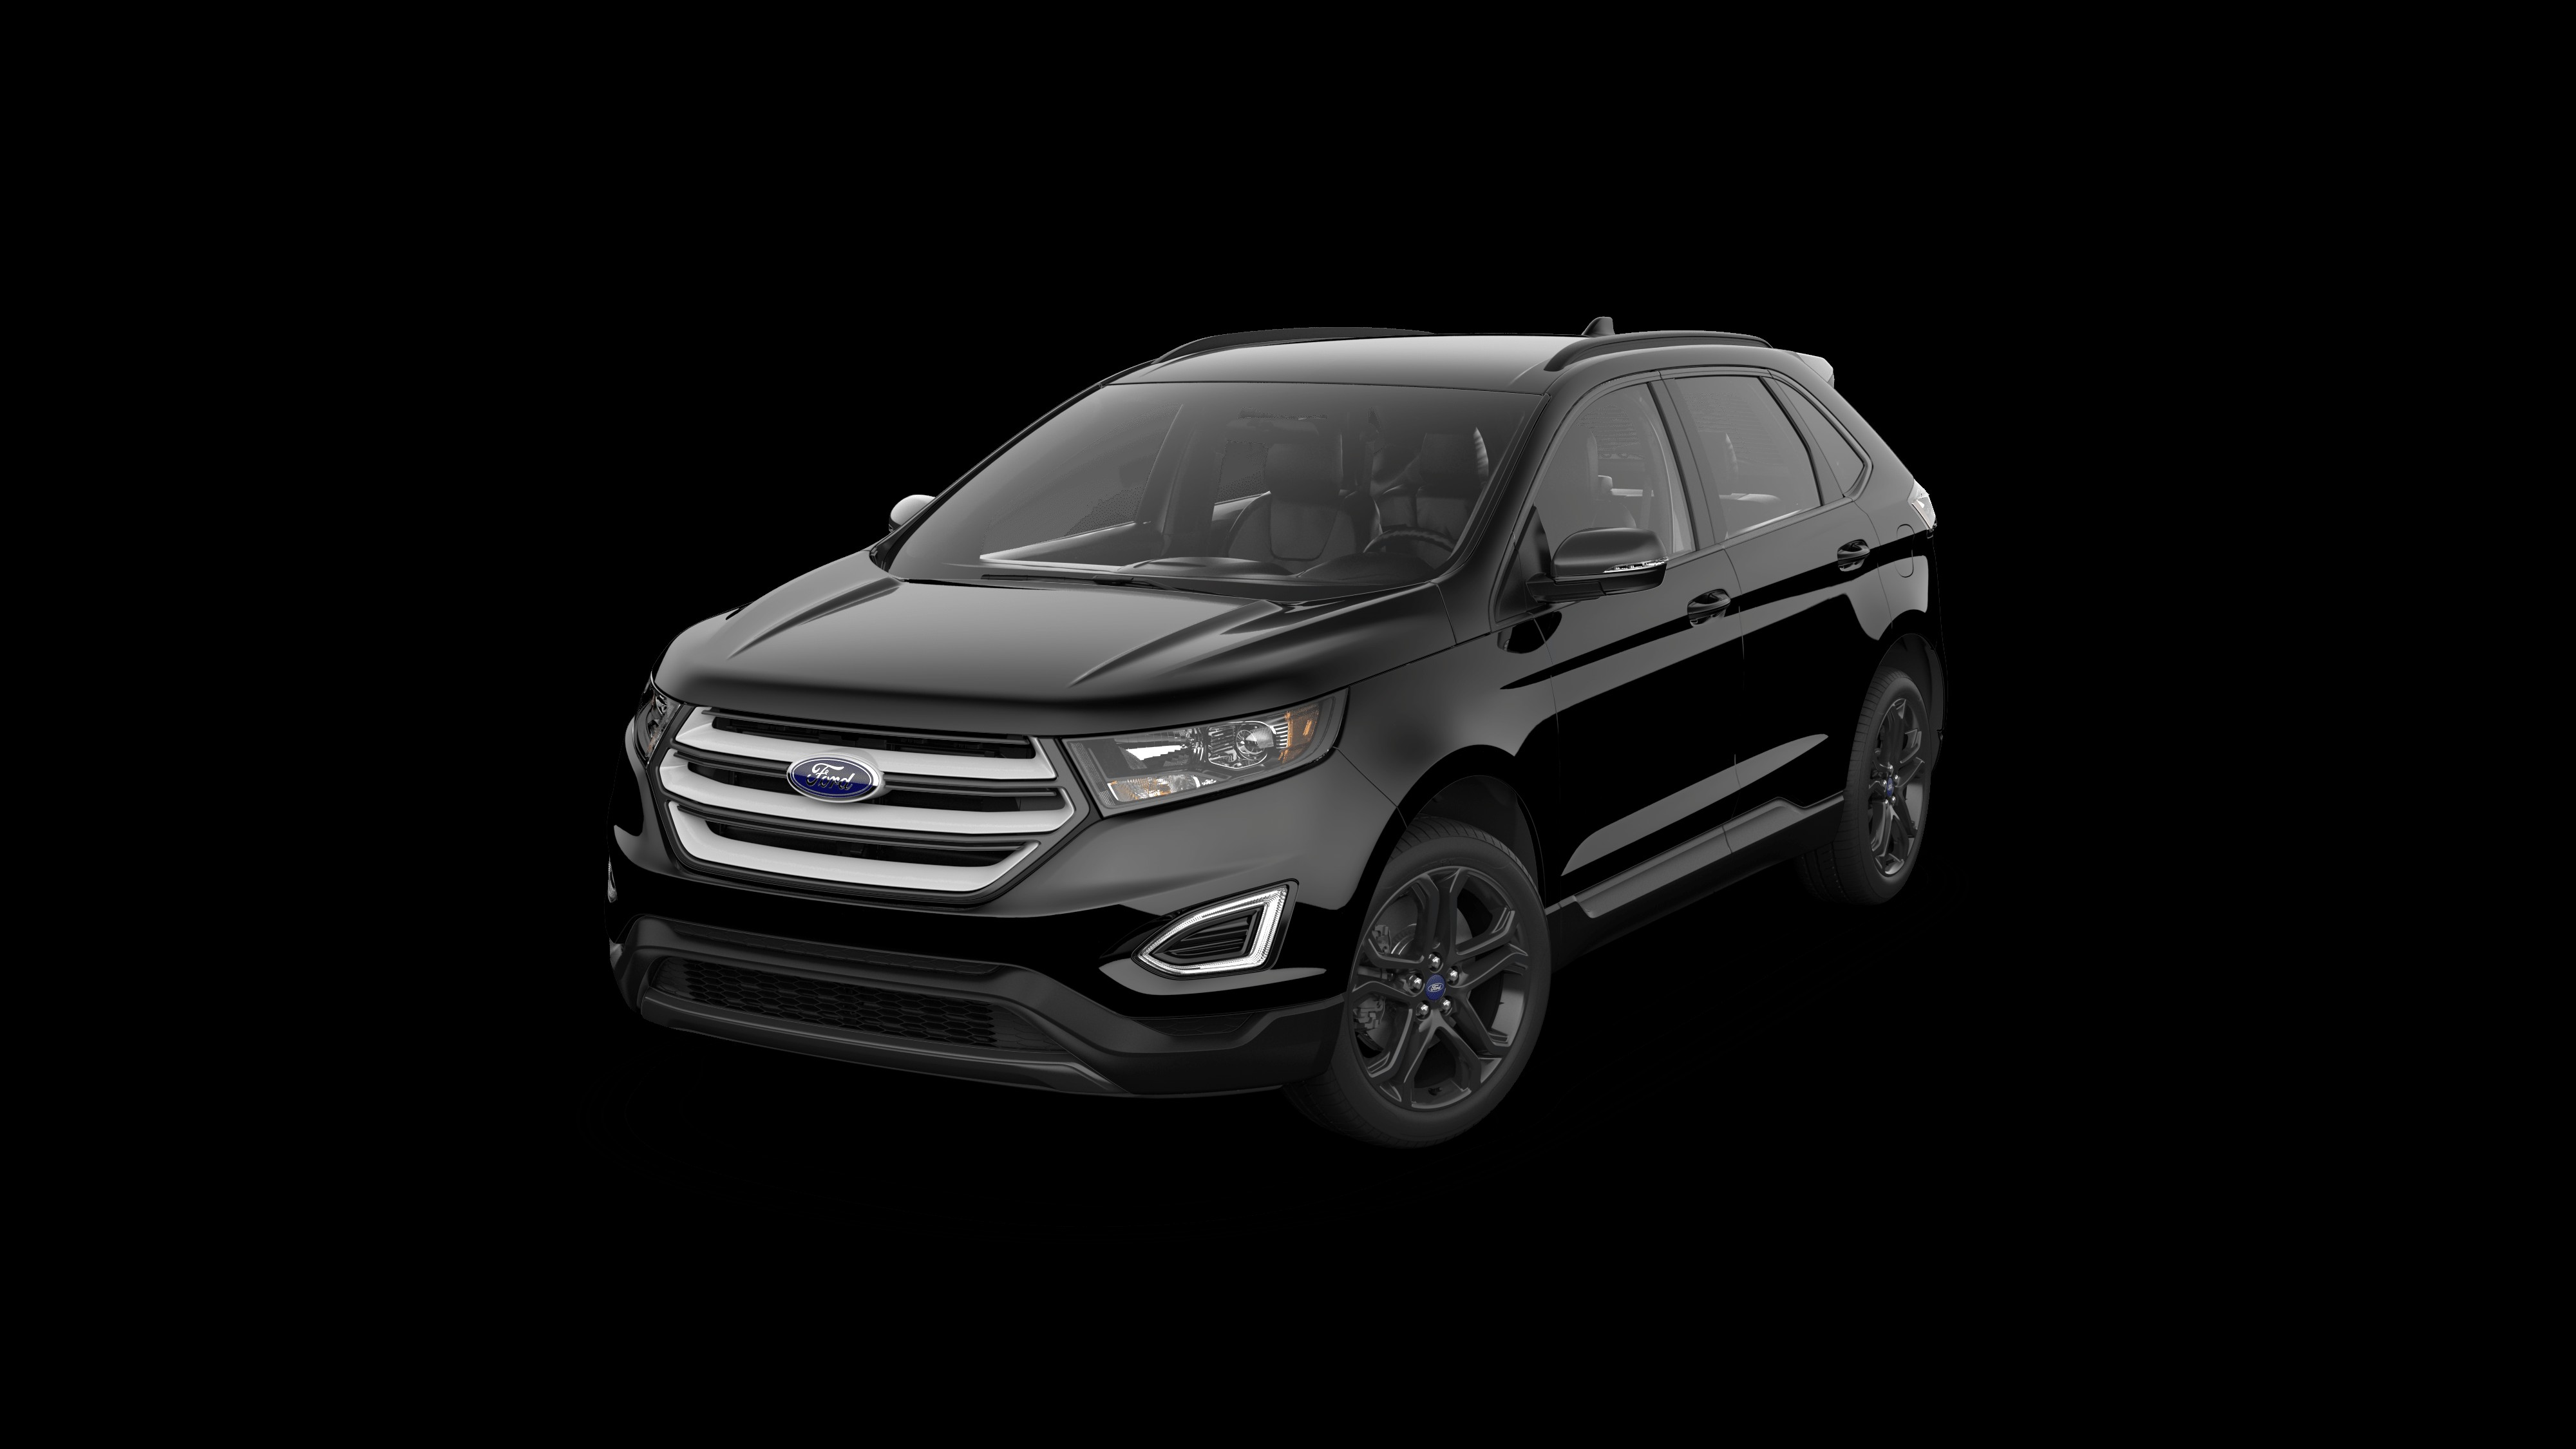 2007 ford edge engine diagram 2018 ford edge for sale in louisville  2fmpk4j87jbb byerly ford of